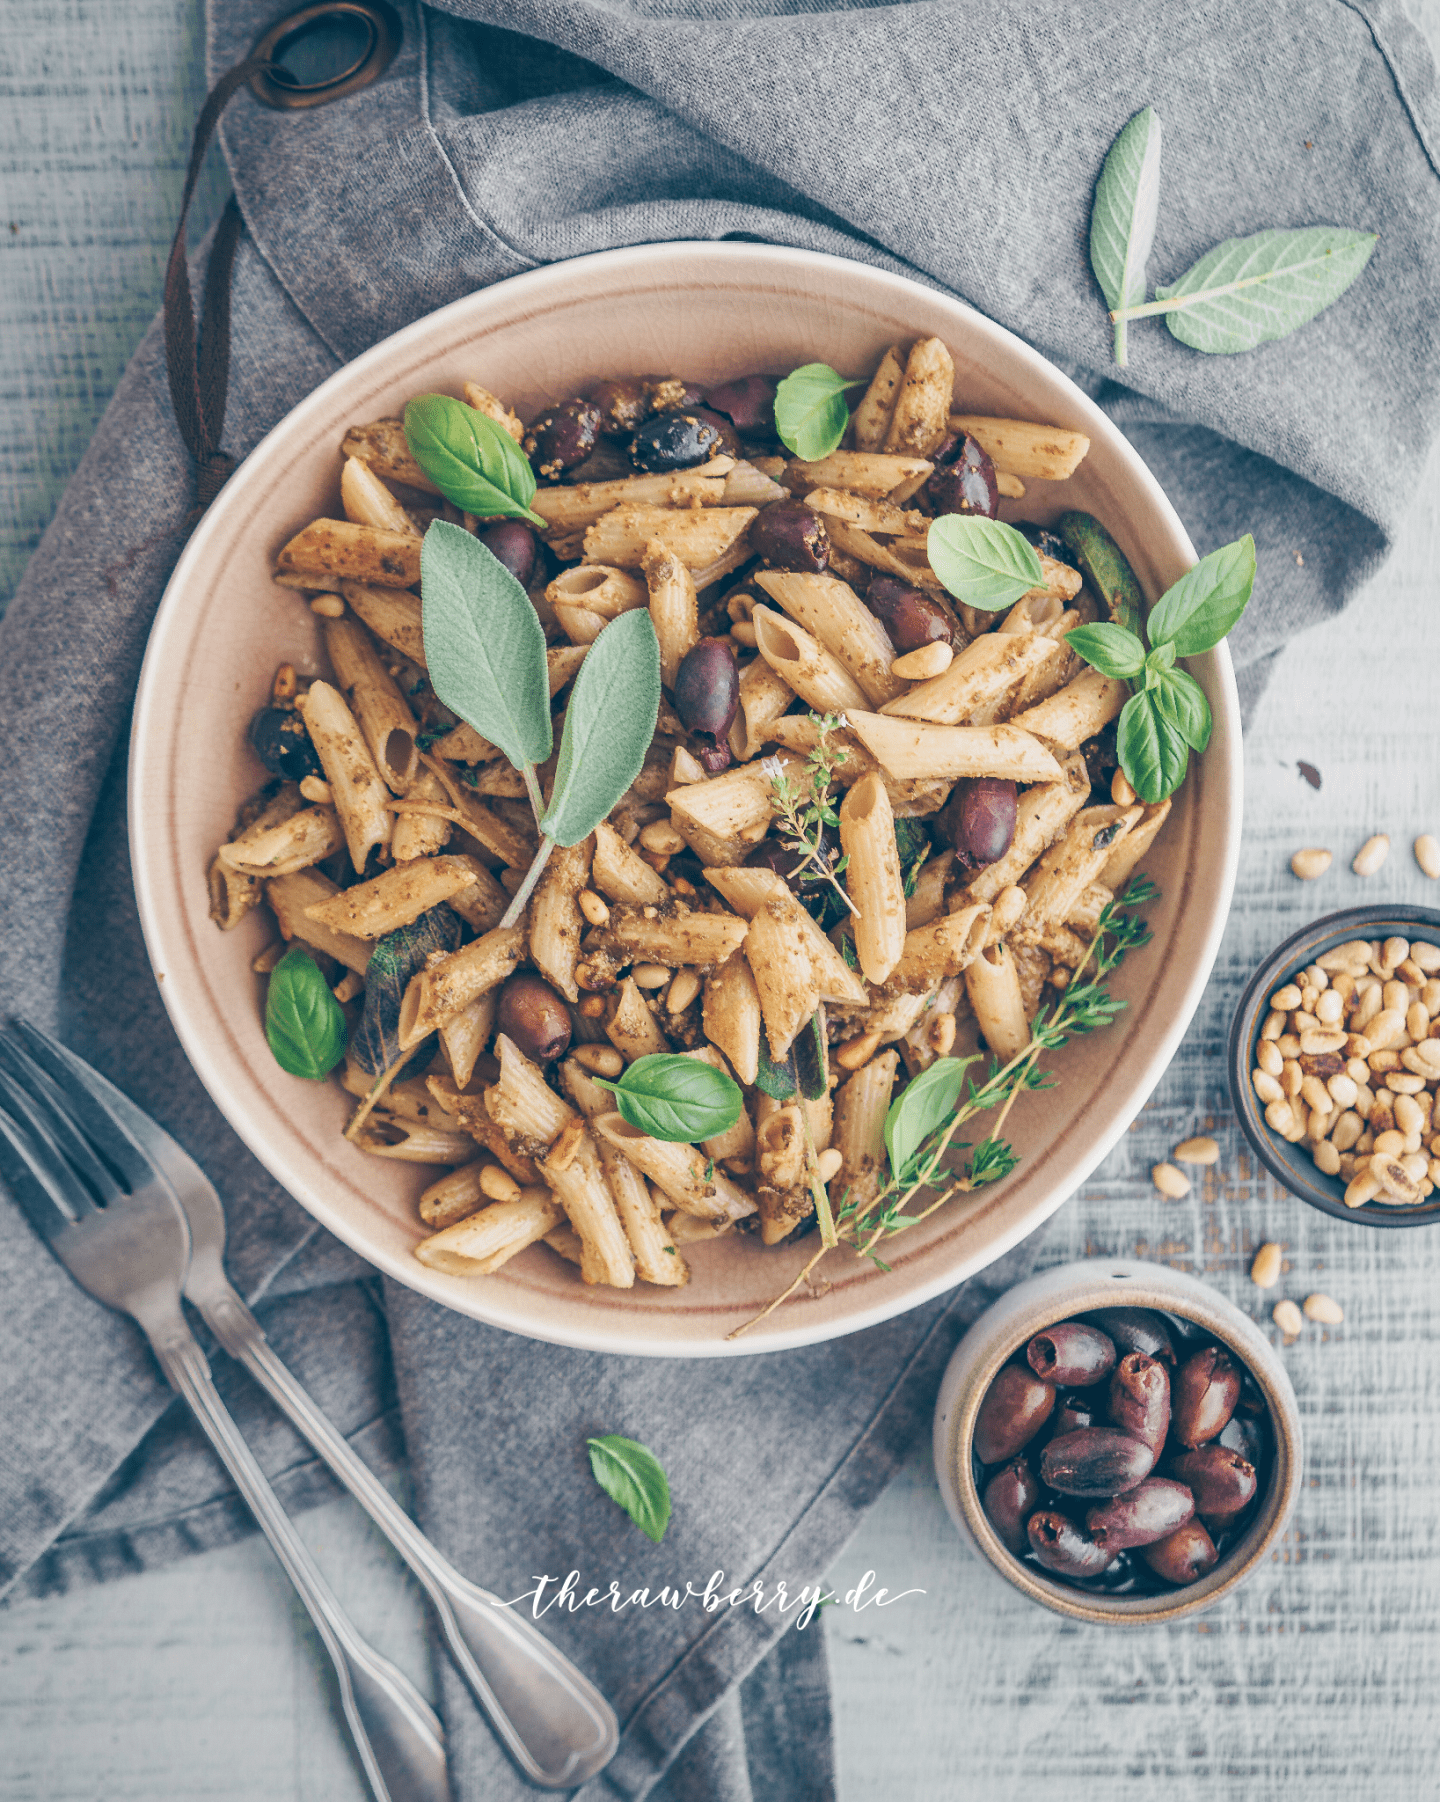 easy, vegan, pasta, dinner, lunch, gluten free, delicious, healthy, glutenfrei, Nudeln, noodles, essen, Mittagessen, Abendessen, kochen, lecker, cooking, whole foods, diet, einfach, simple, schnell, quick, rezept, recipe, olives, olives, sage, salbei